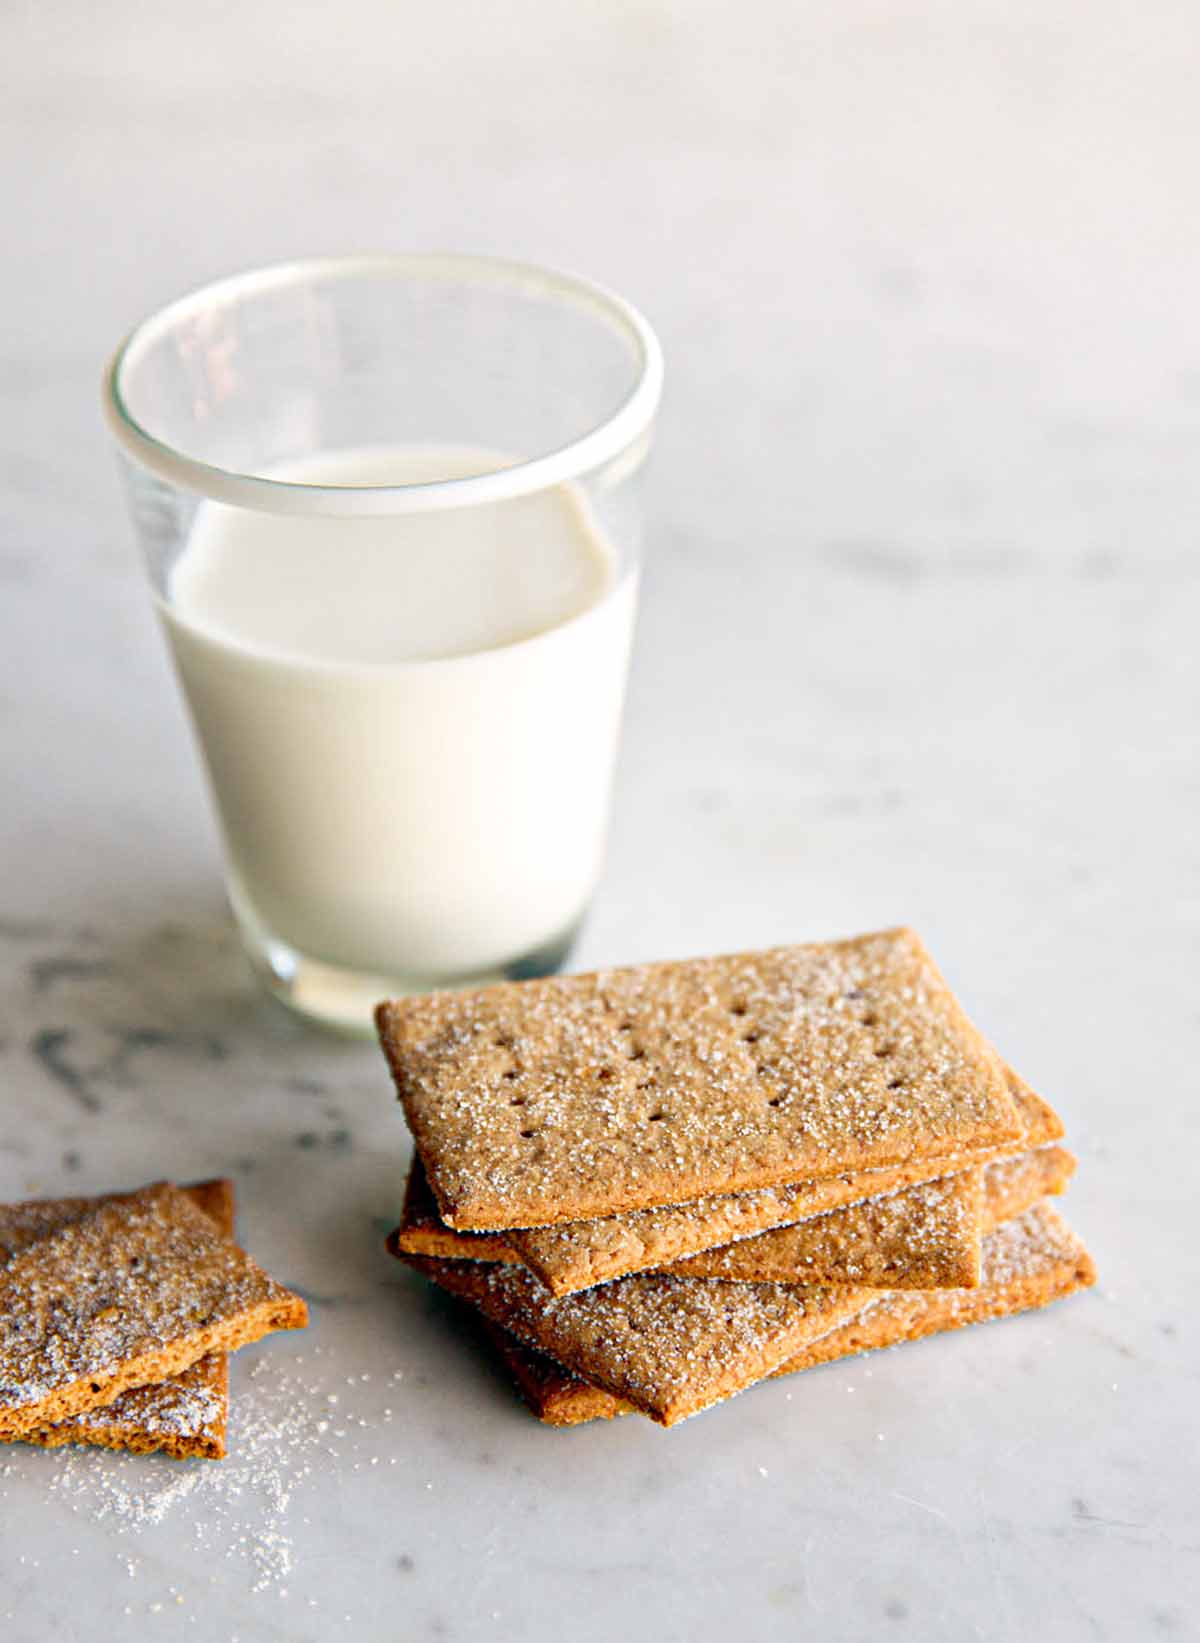 A pile of homemade graham crackers on a marble table with a glass of milk nearby